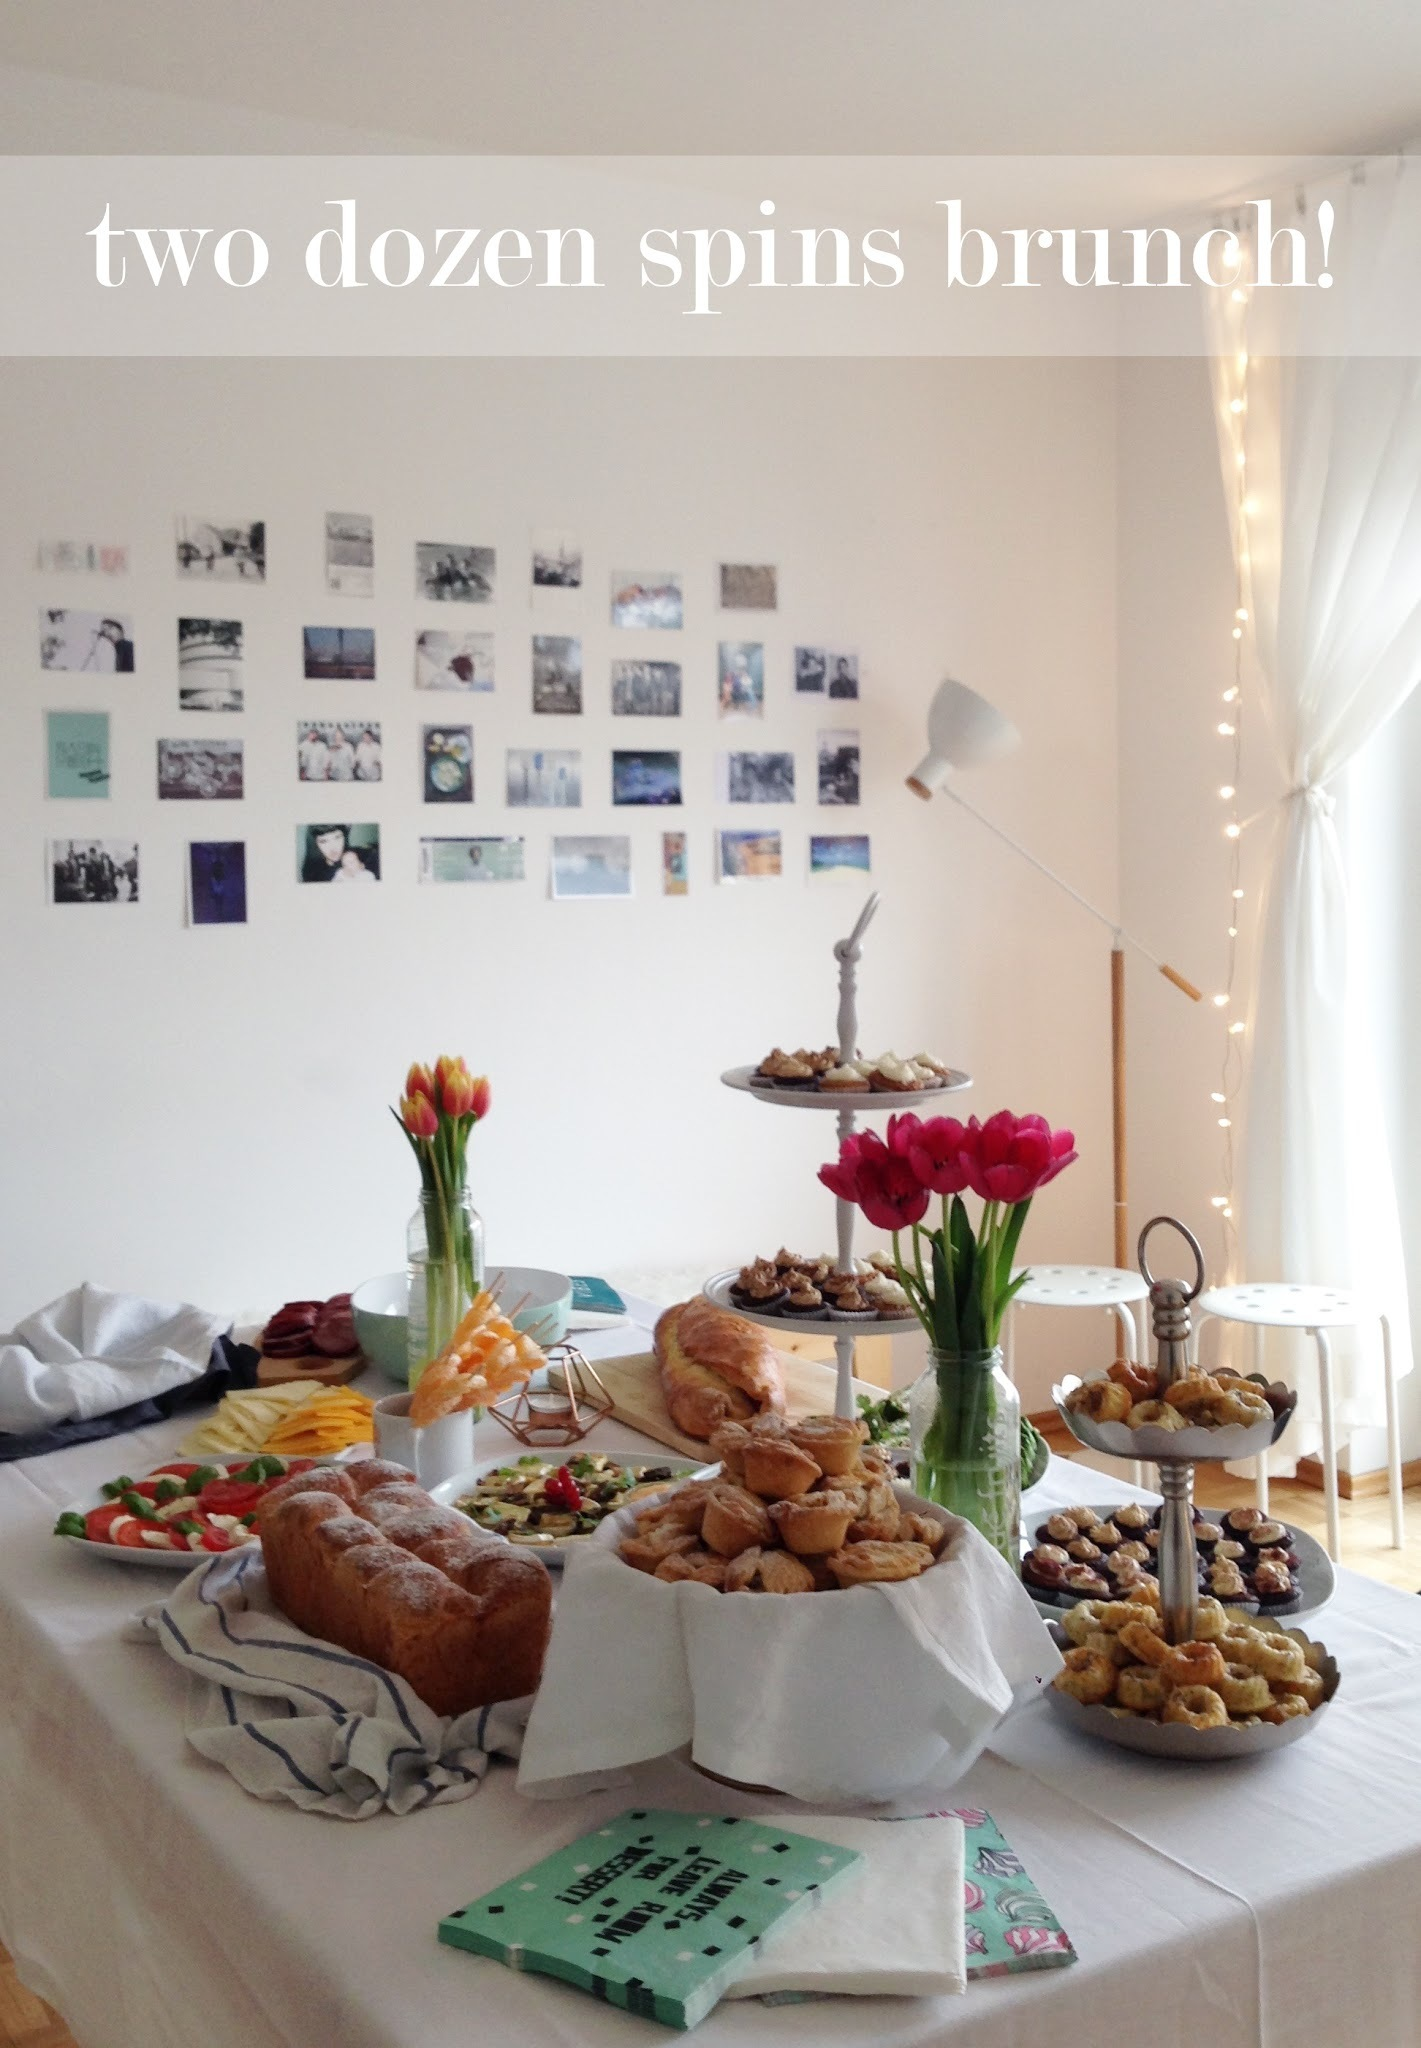 ideas and inspiration: brunch is the new black! { how to plan a brunch party }